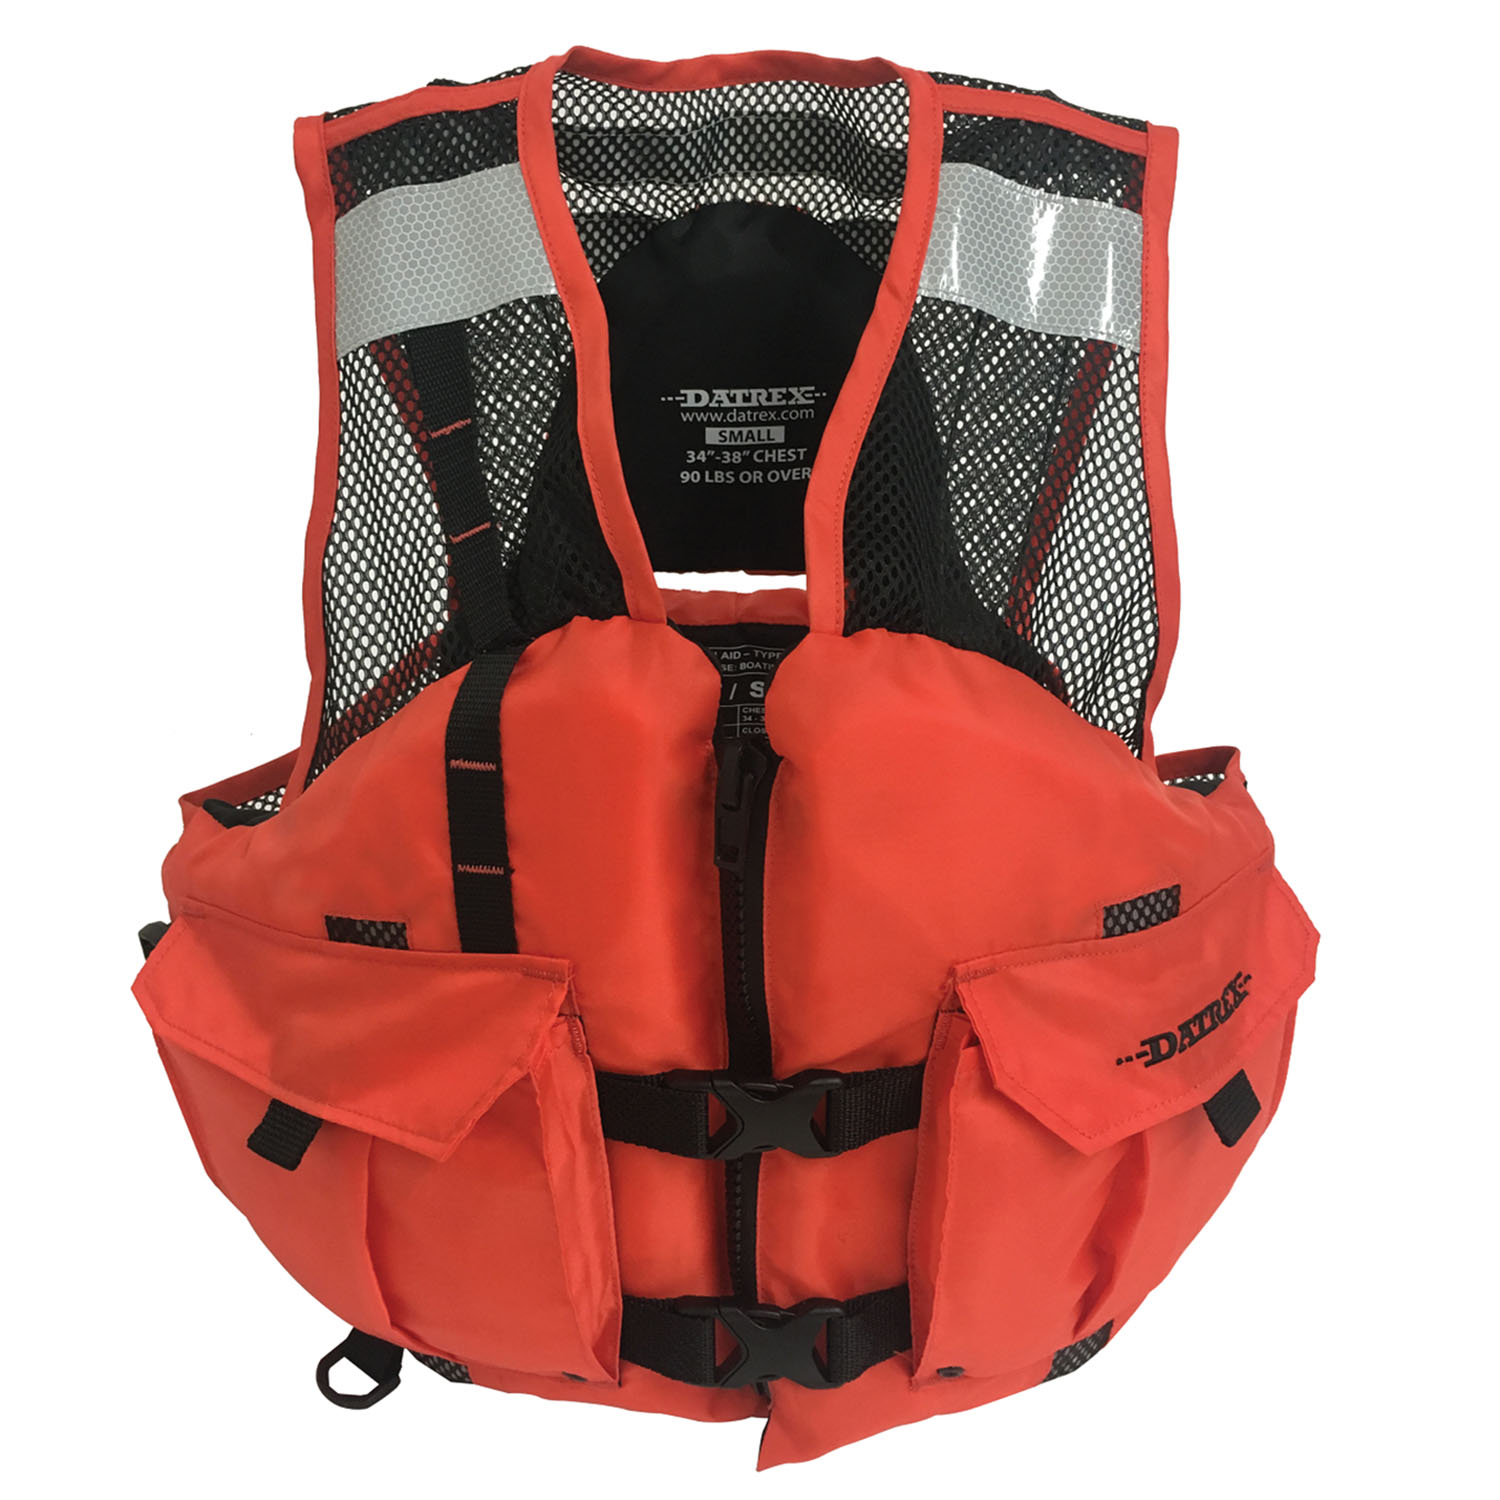 Datrex Inc. Offers New Maxflow Mesh Vest